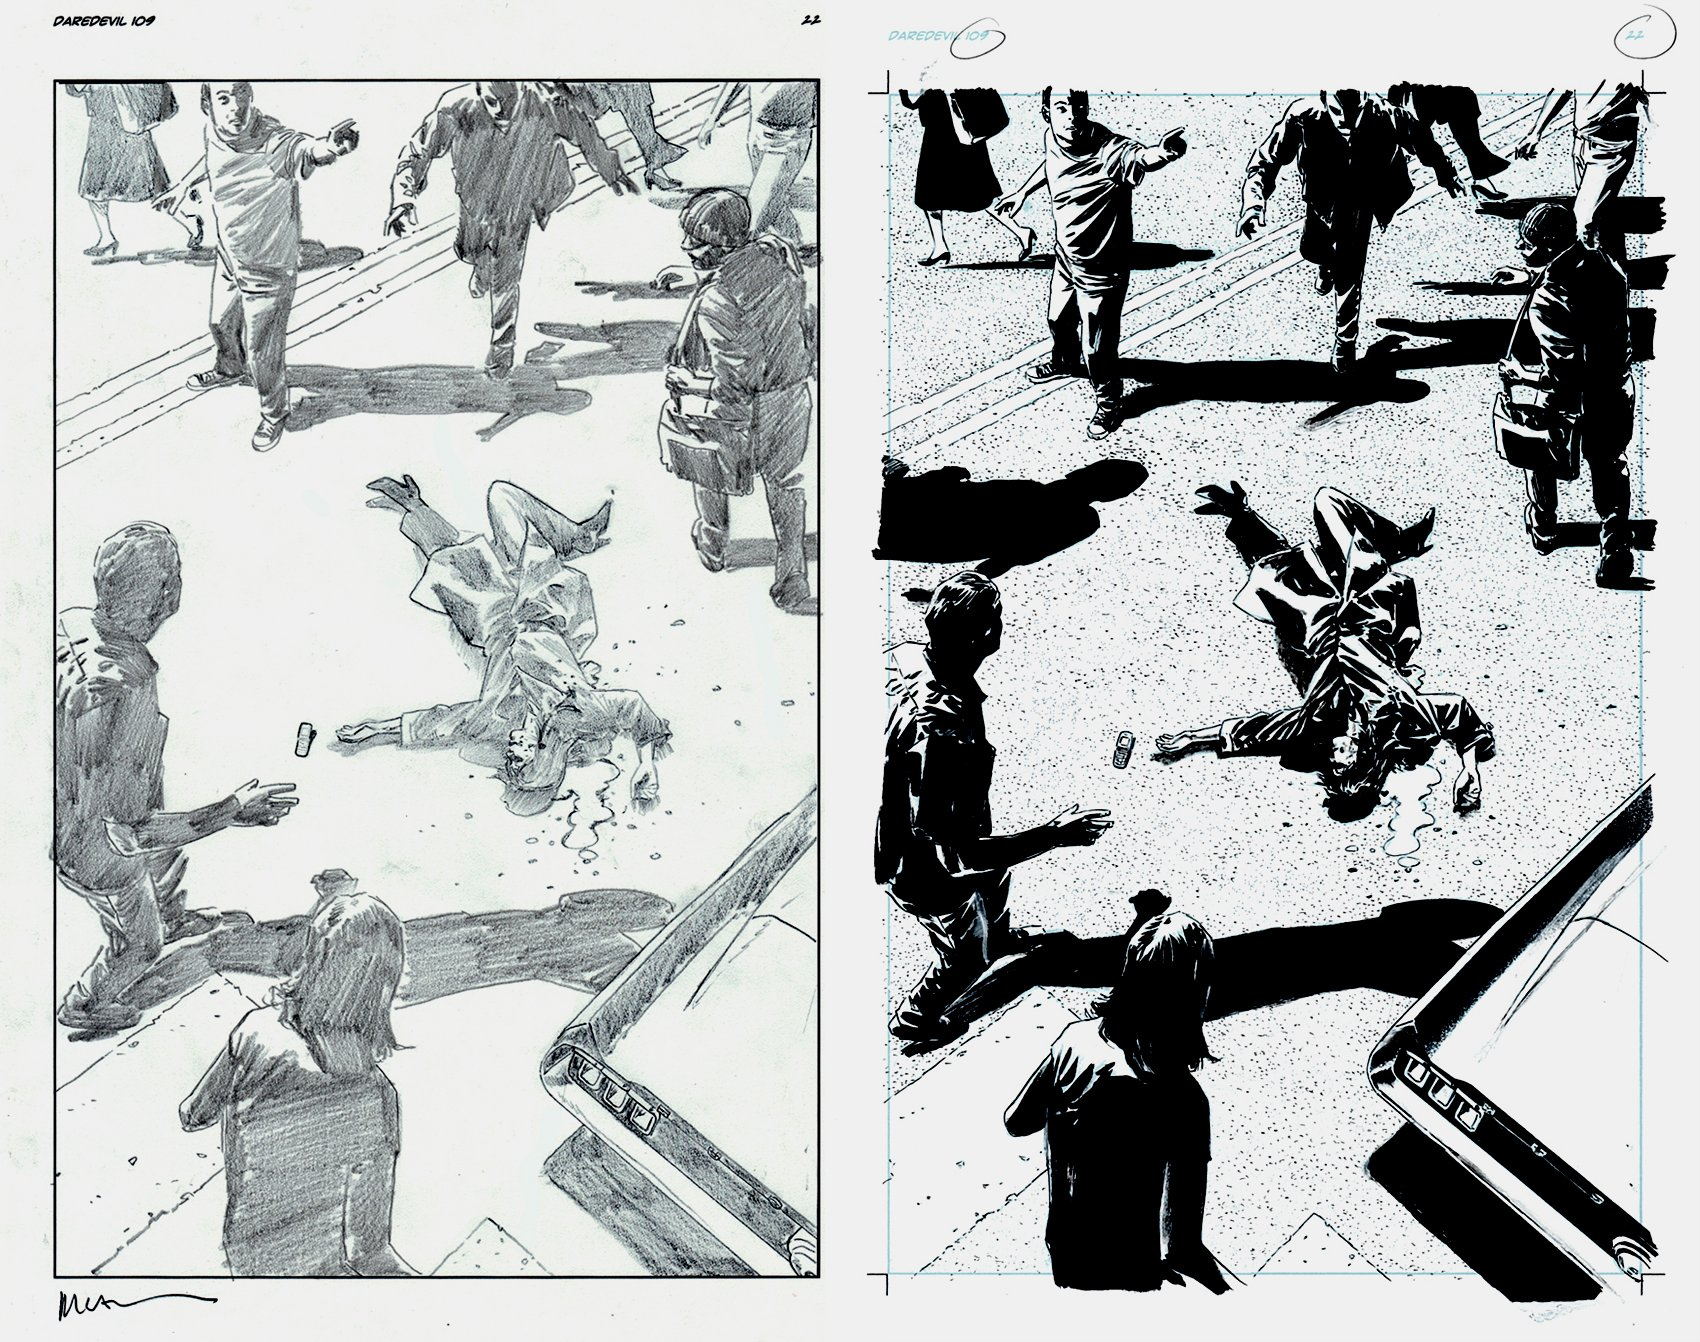 Daredevil #109 p 22, 2  Boards(SOLD LIVE ON 'DUELING DEALERS OF COMIC ART' EPISODE #29 PODCAST ON 8-4-2021 (RE-WATCH THIS FUNNY ART SELLING SHOW HERE)